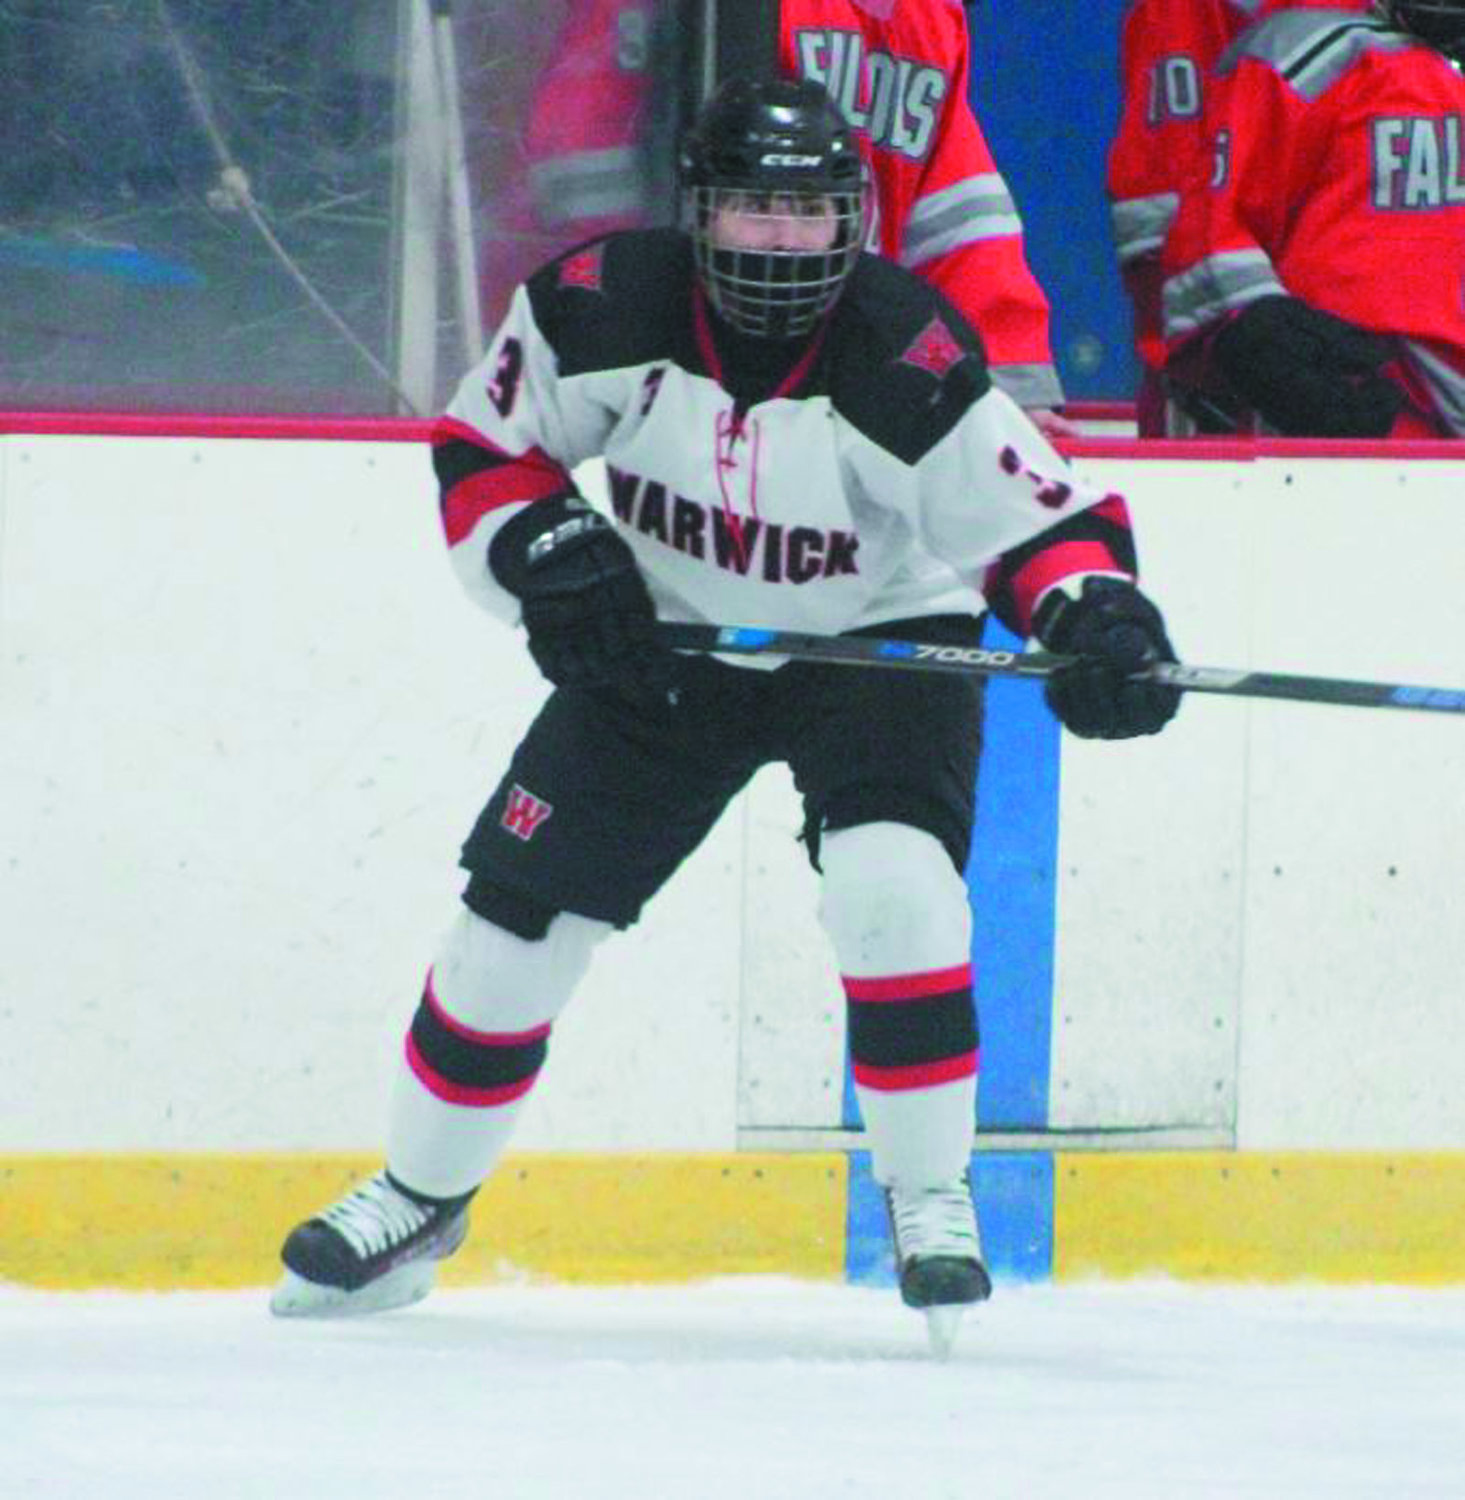 STAYING HOT: Warwick's Charlie Clements last week against Cranston.